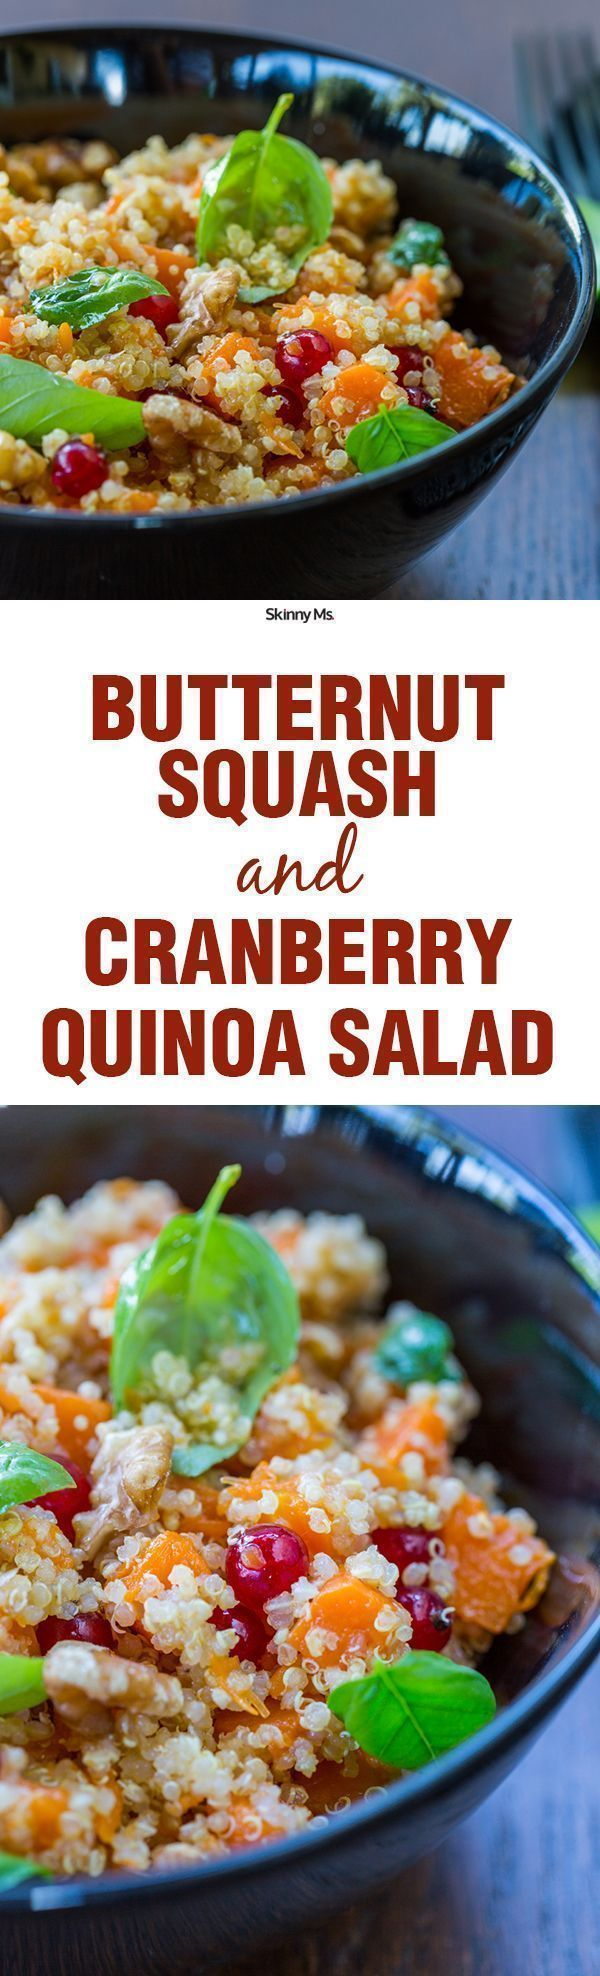 This salad is loaded with vitamins and minerals, and it satiates my fall time cravings. This is the Butternut Squash and Cranberry Quinoa Salad. This is going to be the salad on my Thanksgiving table.